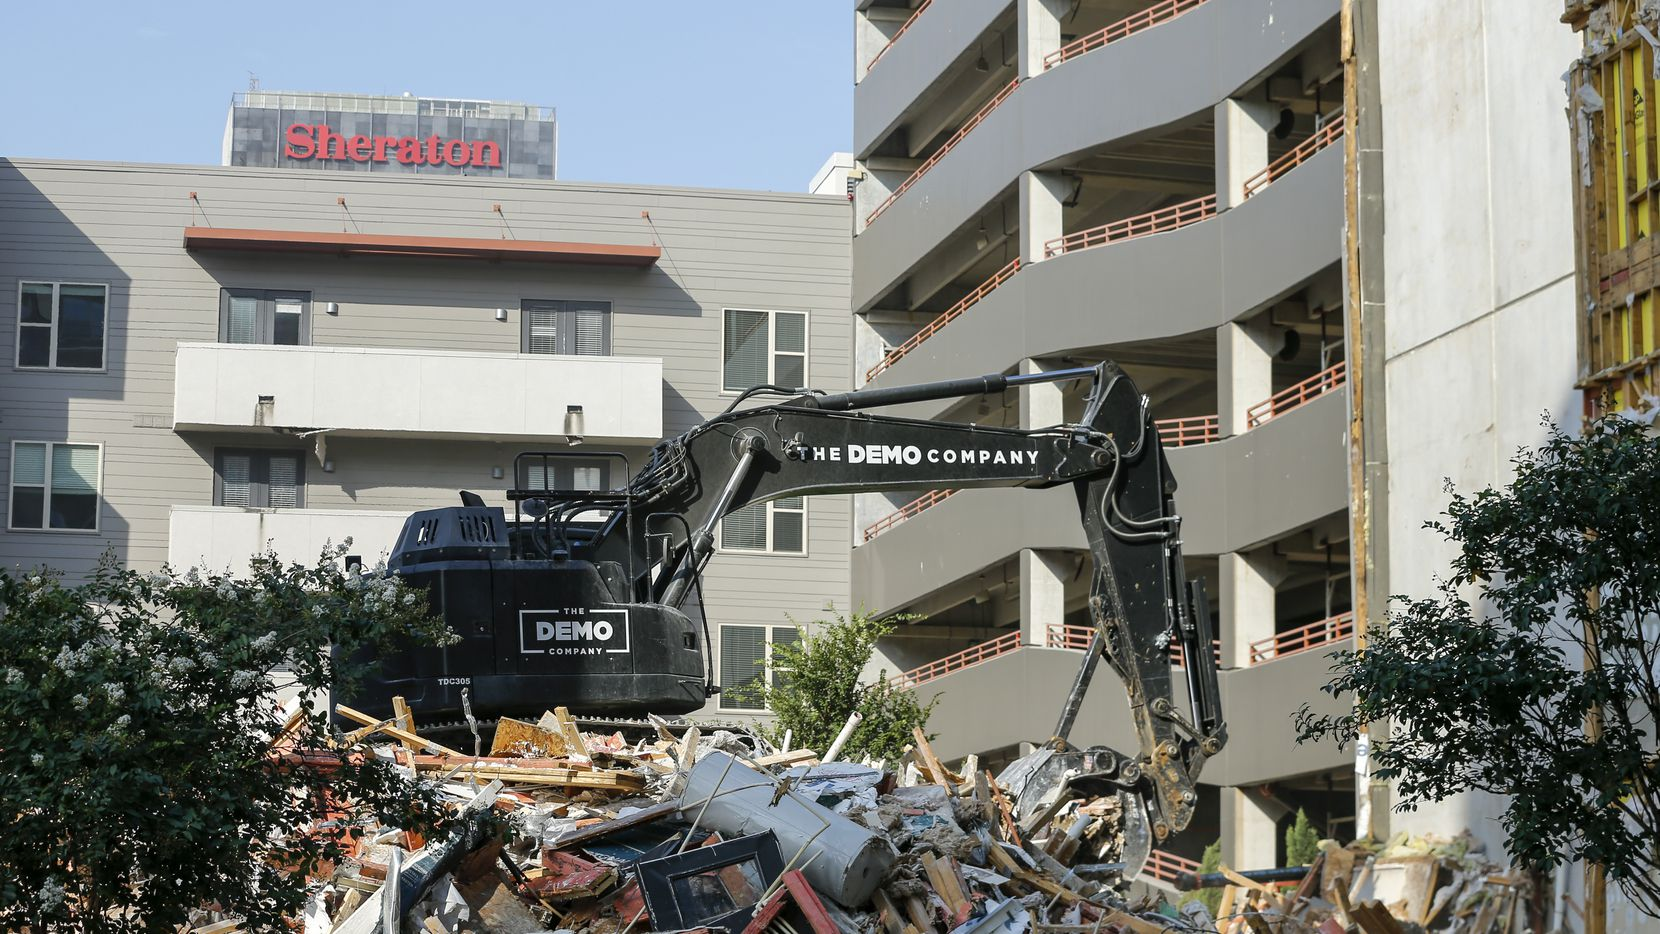 An excavator cleared debris at the Elan City Lights apartments Wednesday in Dallas. A construction crane fell onto the apartment complex and garage in June 2019, killing one person and injuring five others.